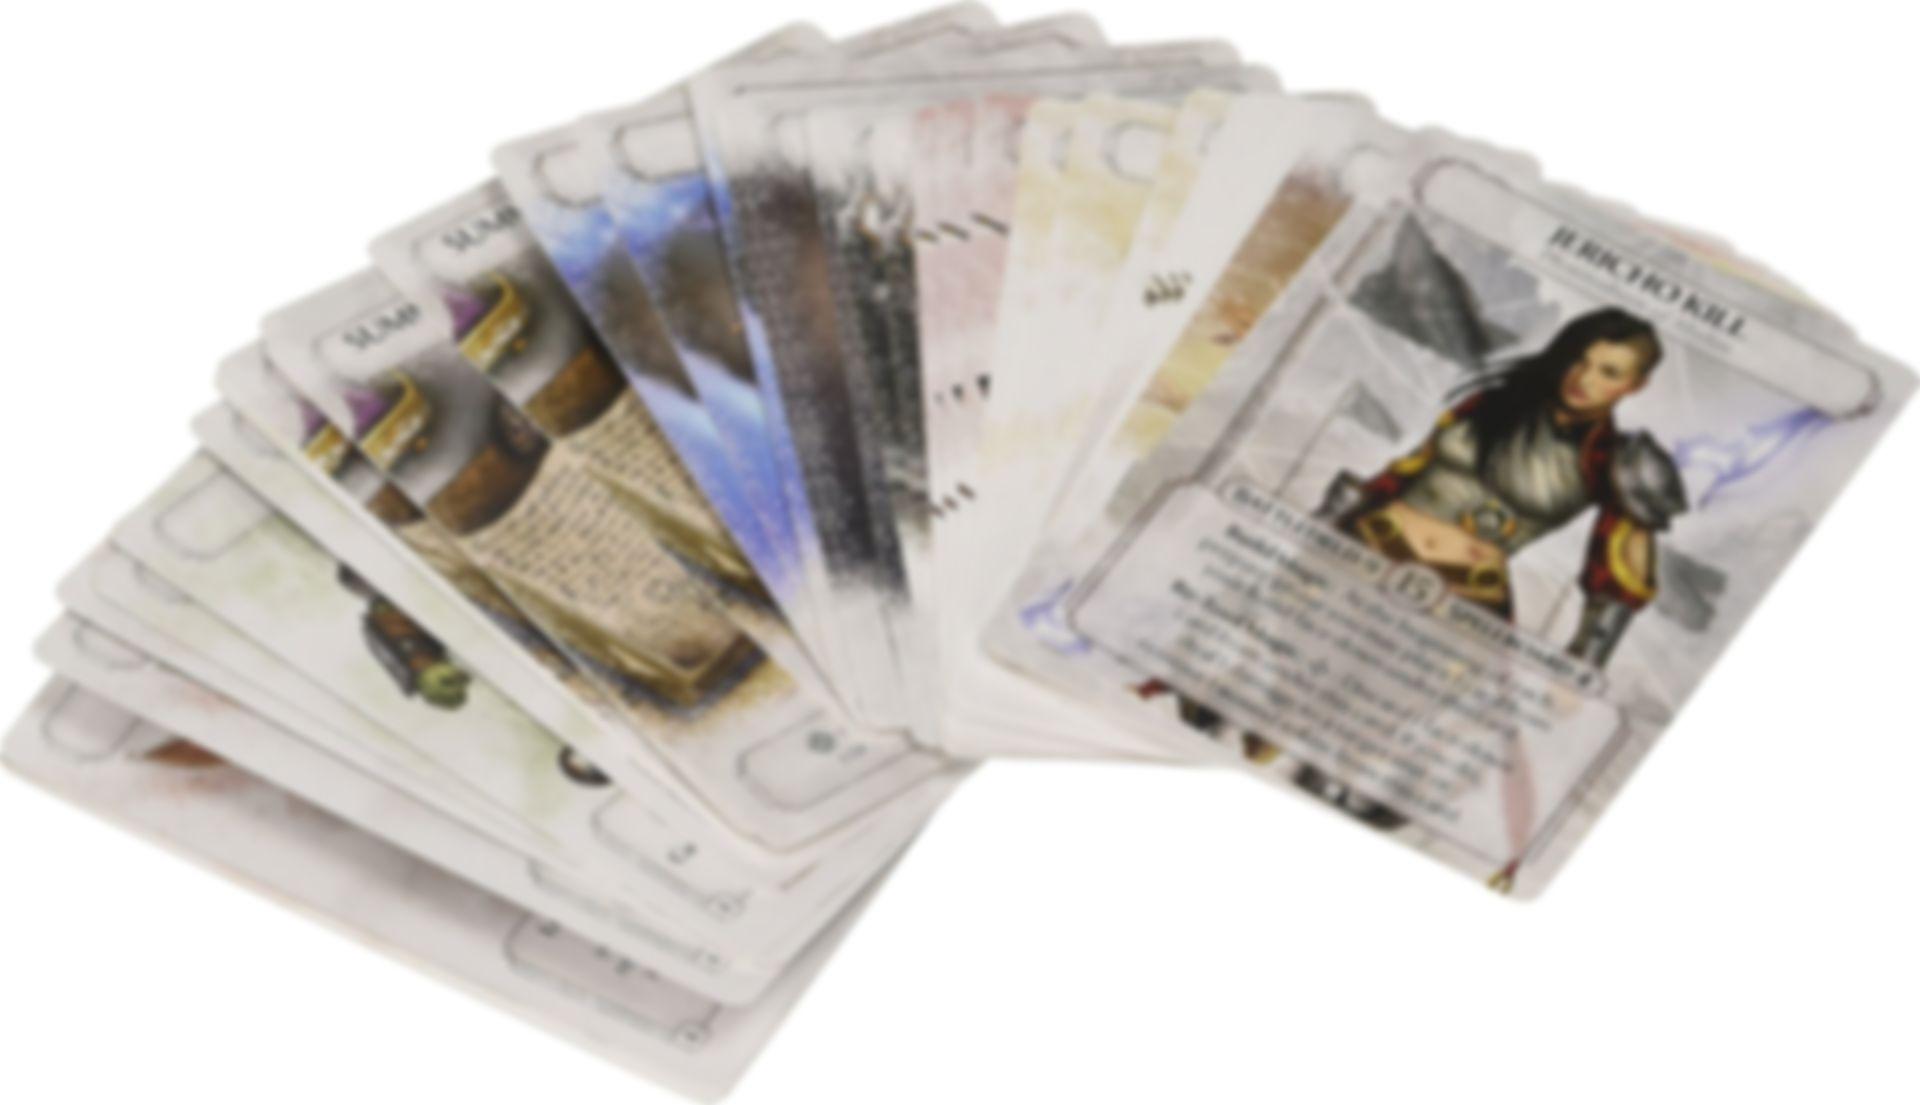 Ashes: The Path of Assassins cards